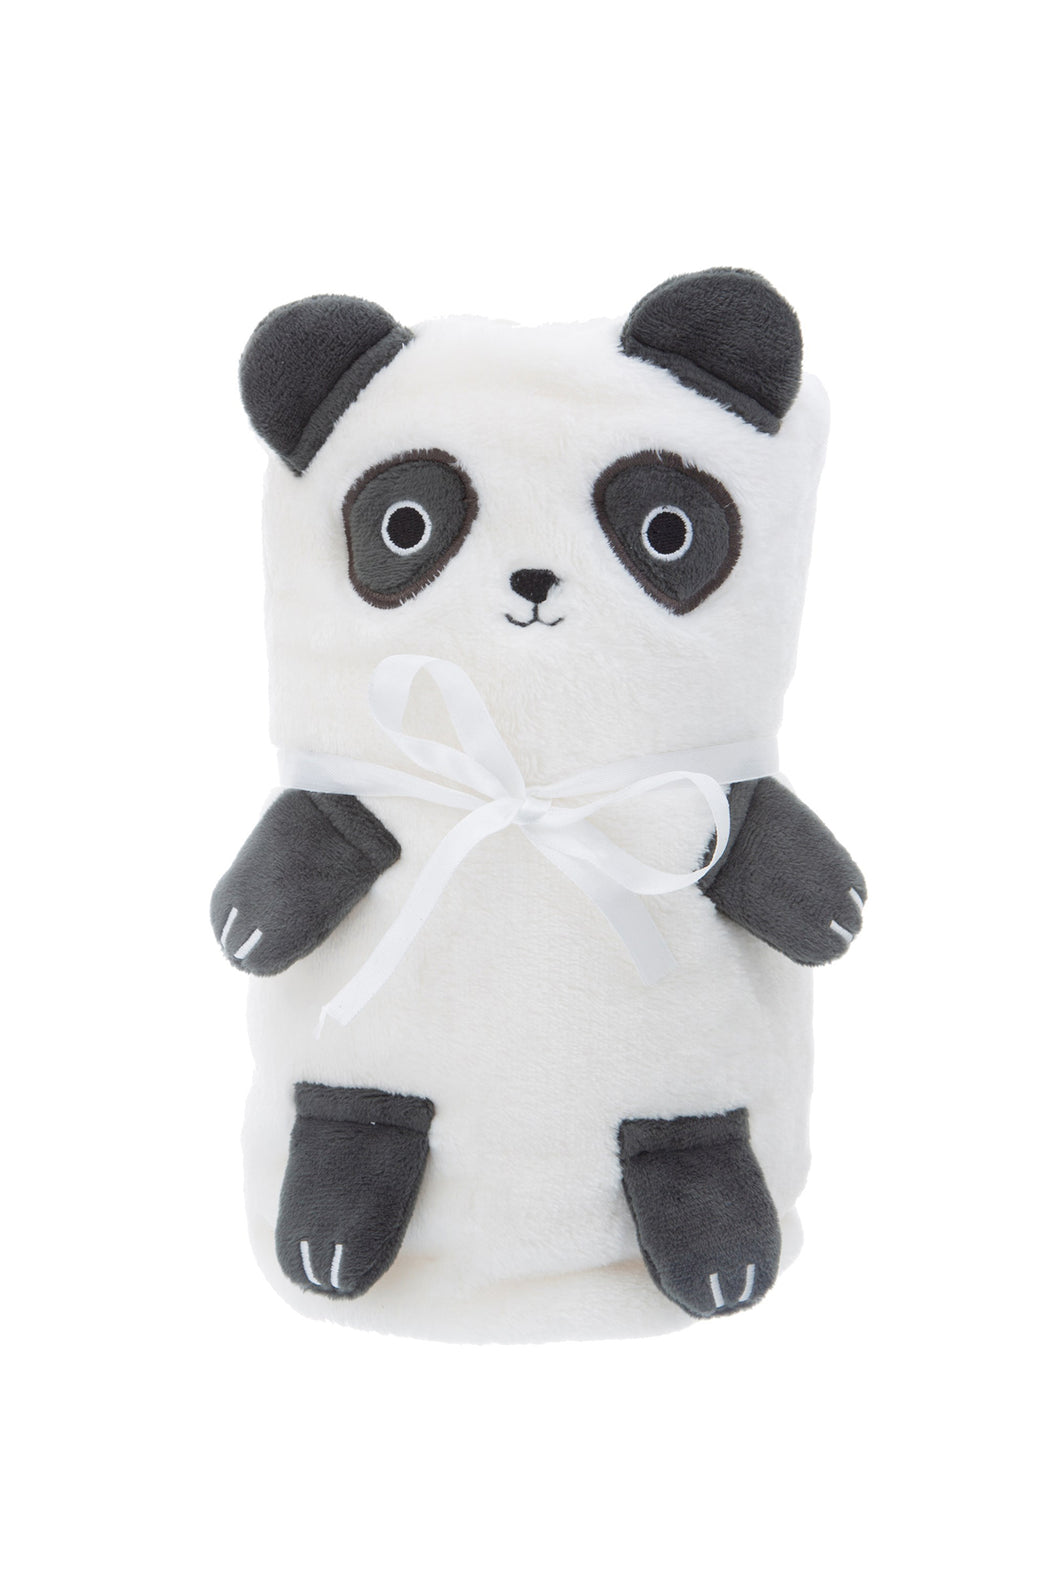 Panda Soft Fleece Baby Blanket, Cushion, Sass & Belle - 3LittlePicks